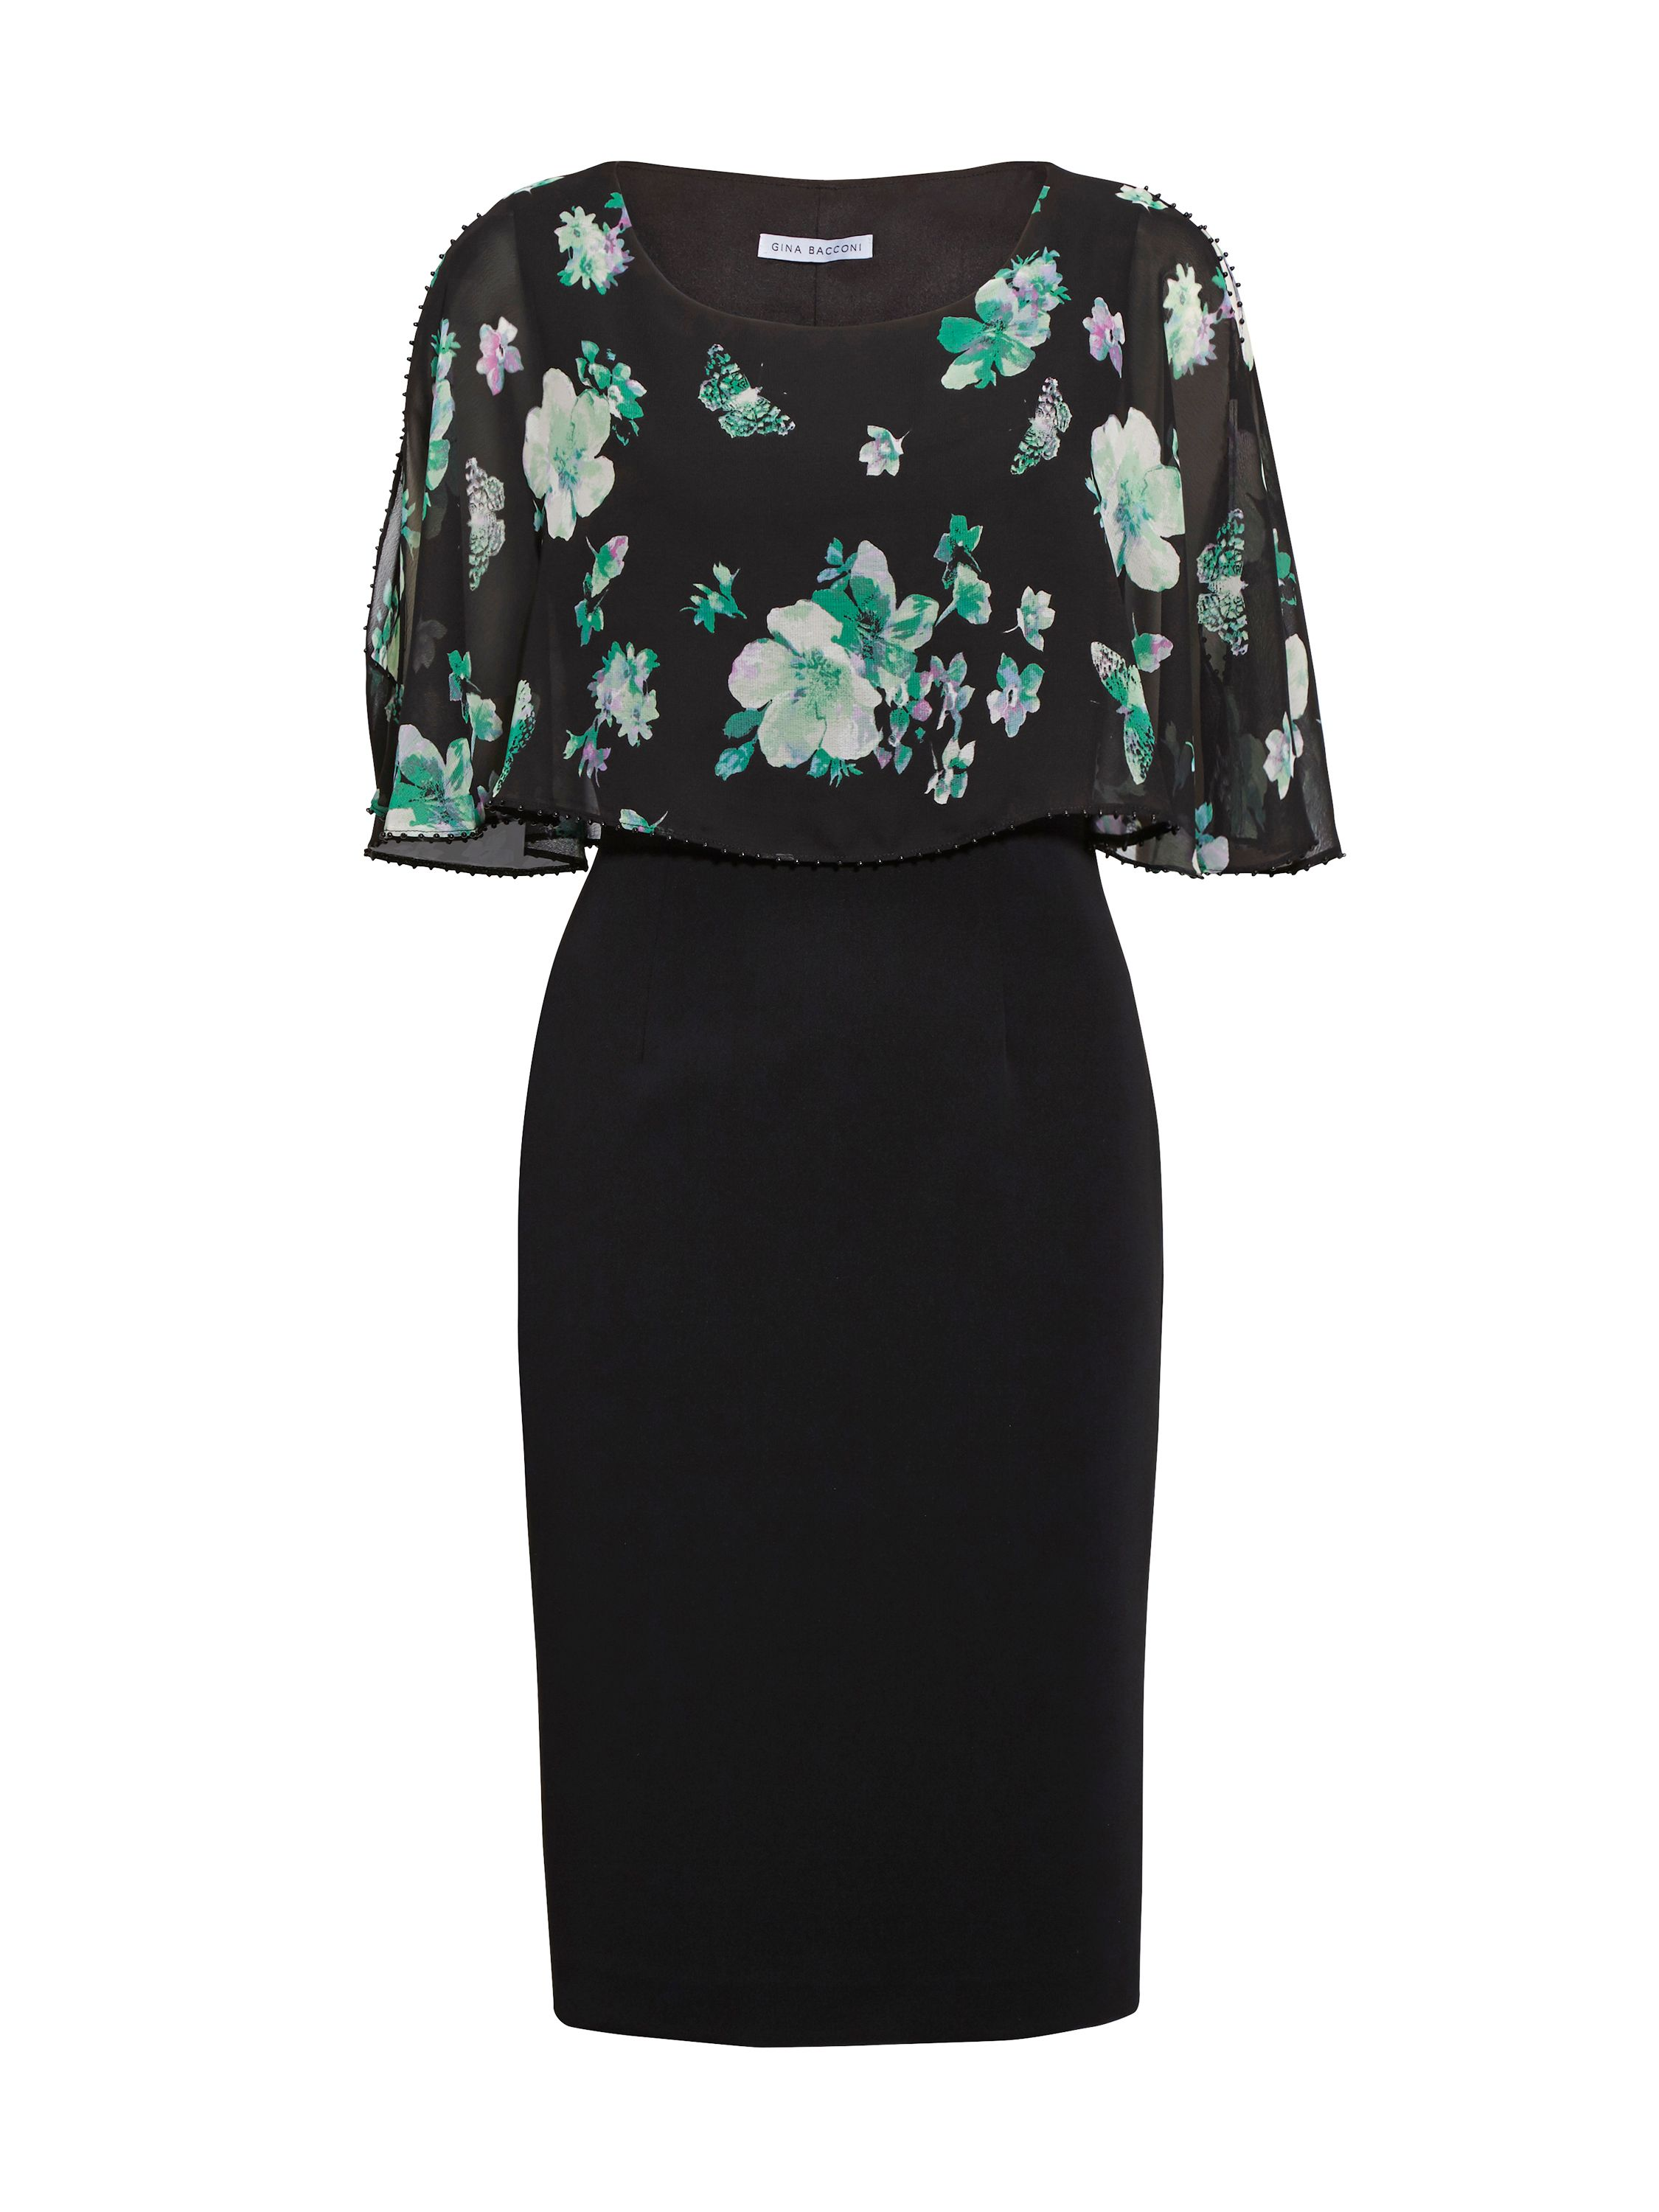 Gina Bacconi Green Floral Chiffon, Moss Crepe Dress, Black